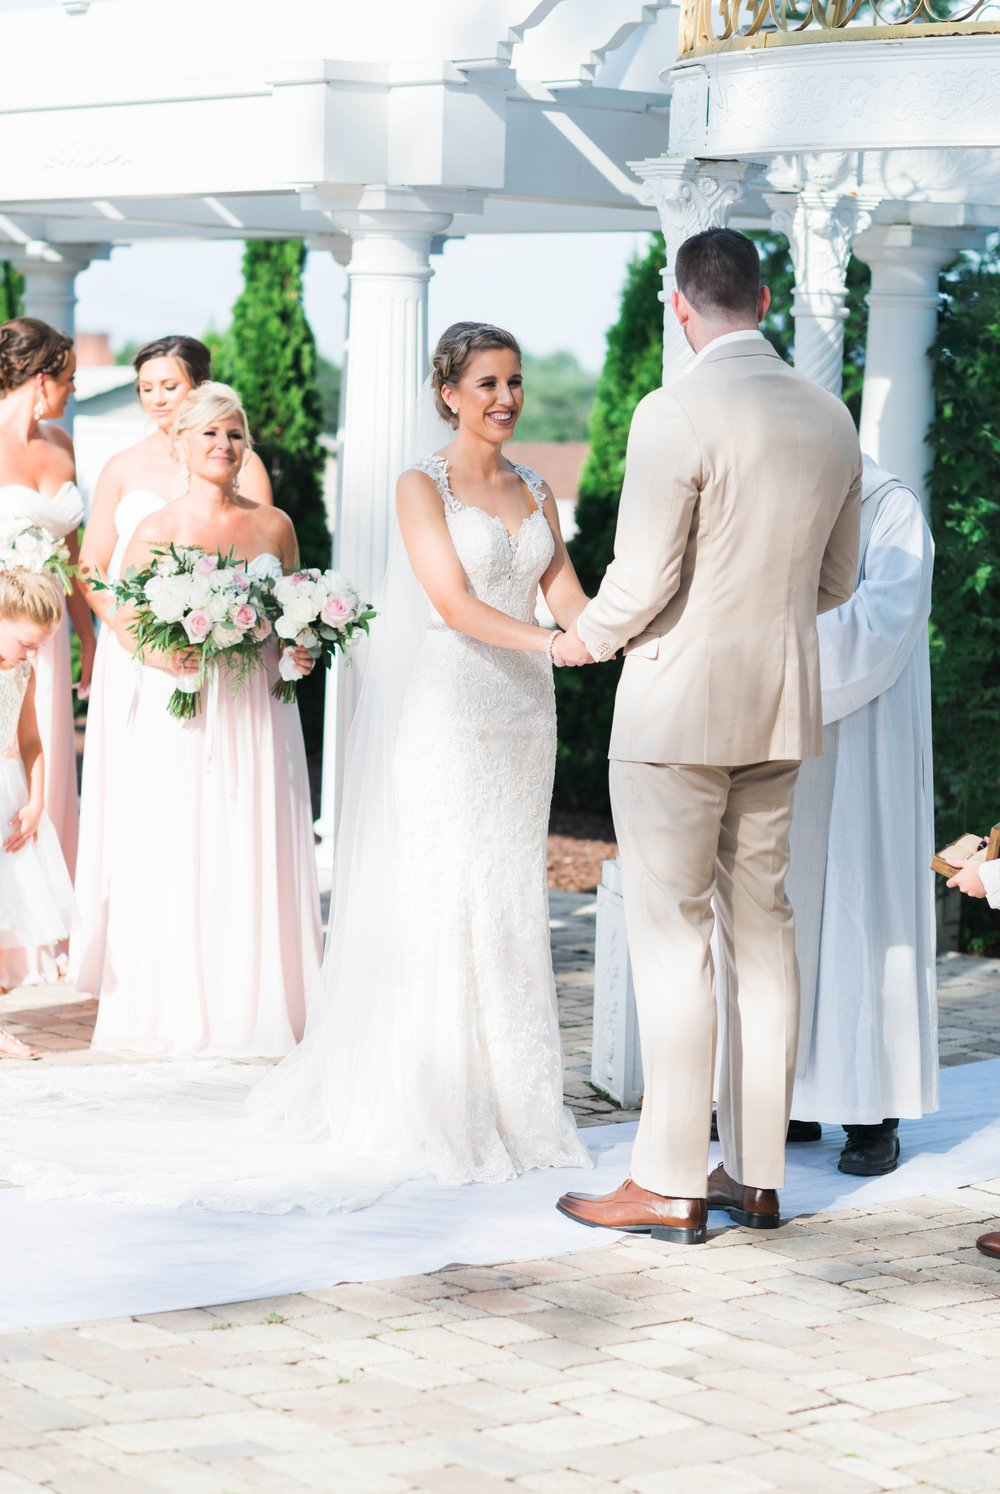 BedfordColumns_EntwinedEvents_Lynchburgwedding_VIrginiaweddingphotographer_ALlisonNIck 47.jpg